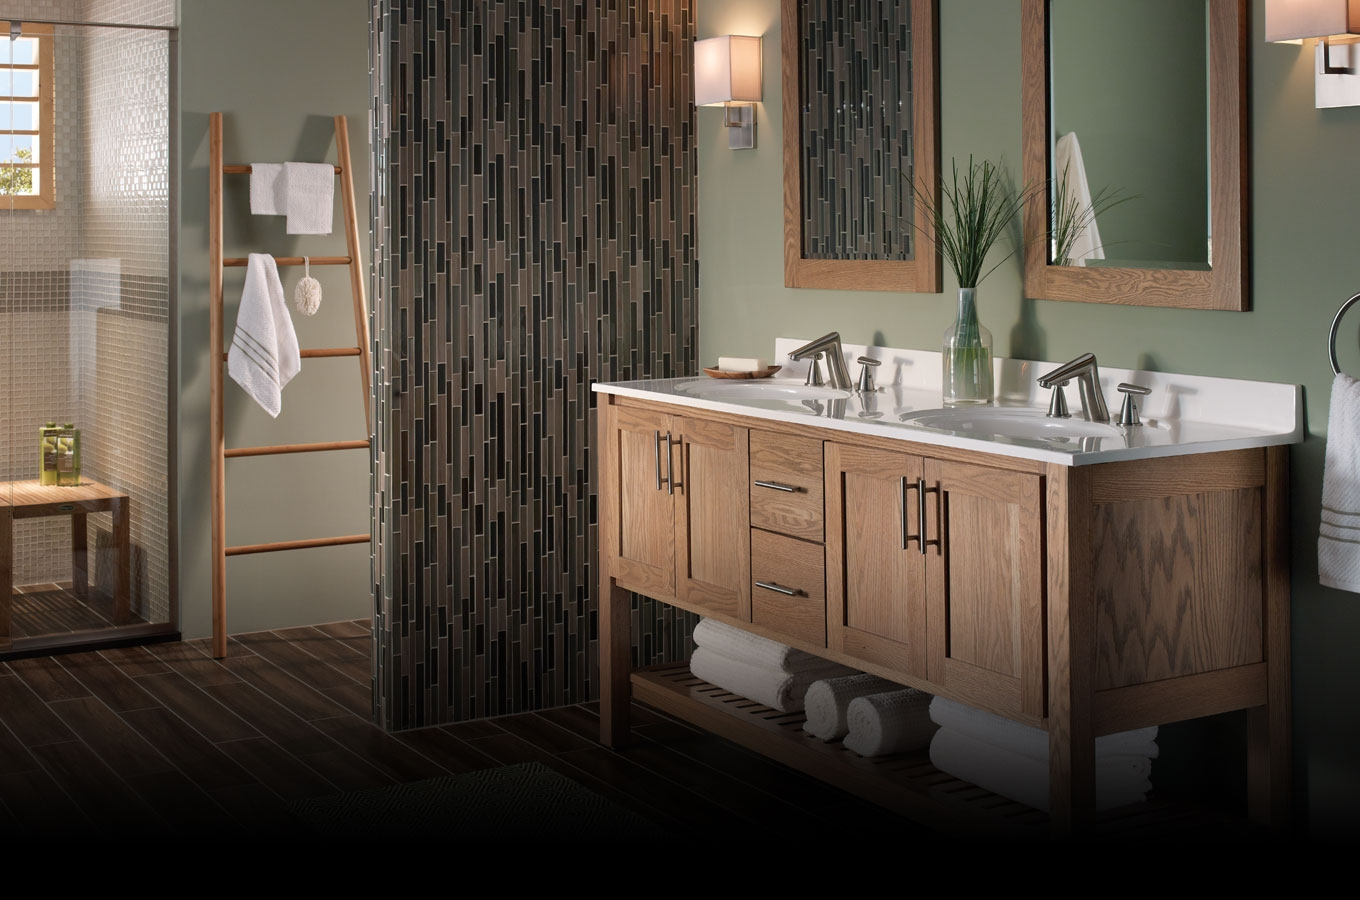 Bertch Interlude Bathroom Vanity